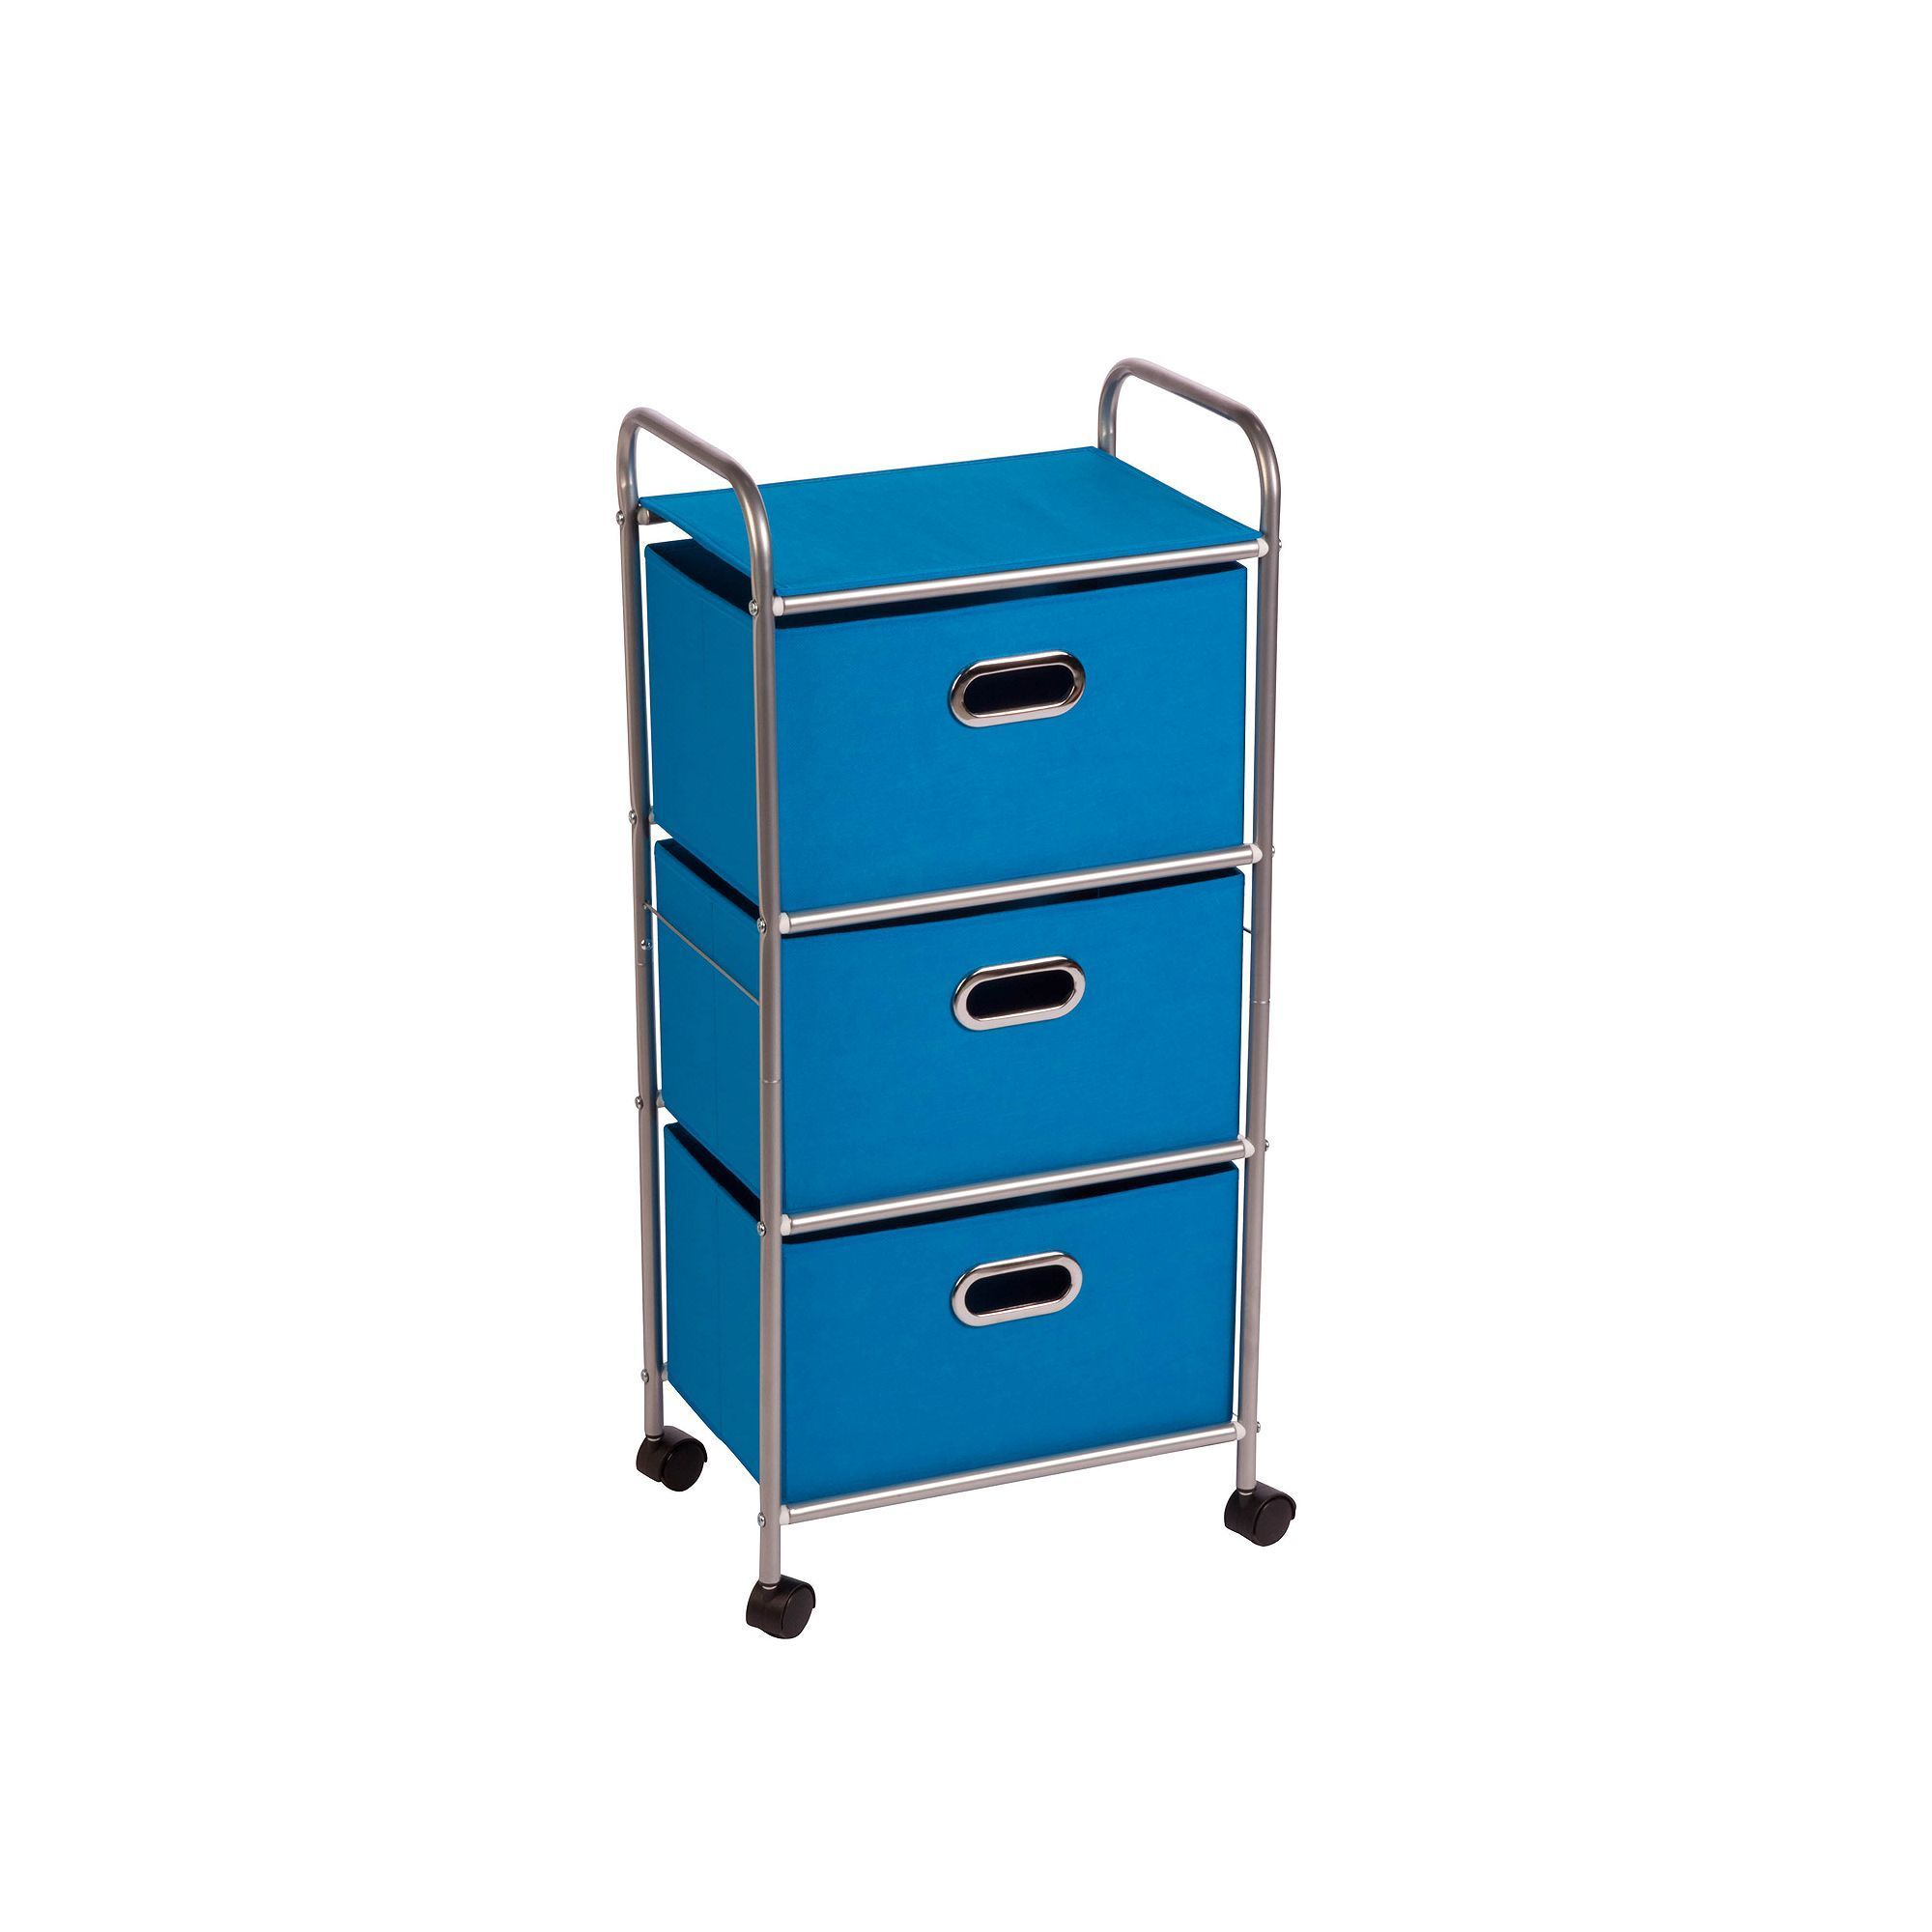 product image drawers storage upc cart wide for com upcitemdb prod spin black drawer